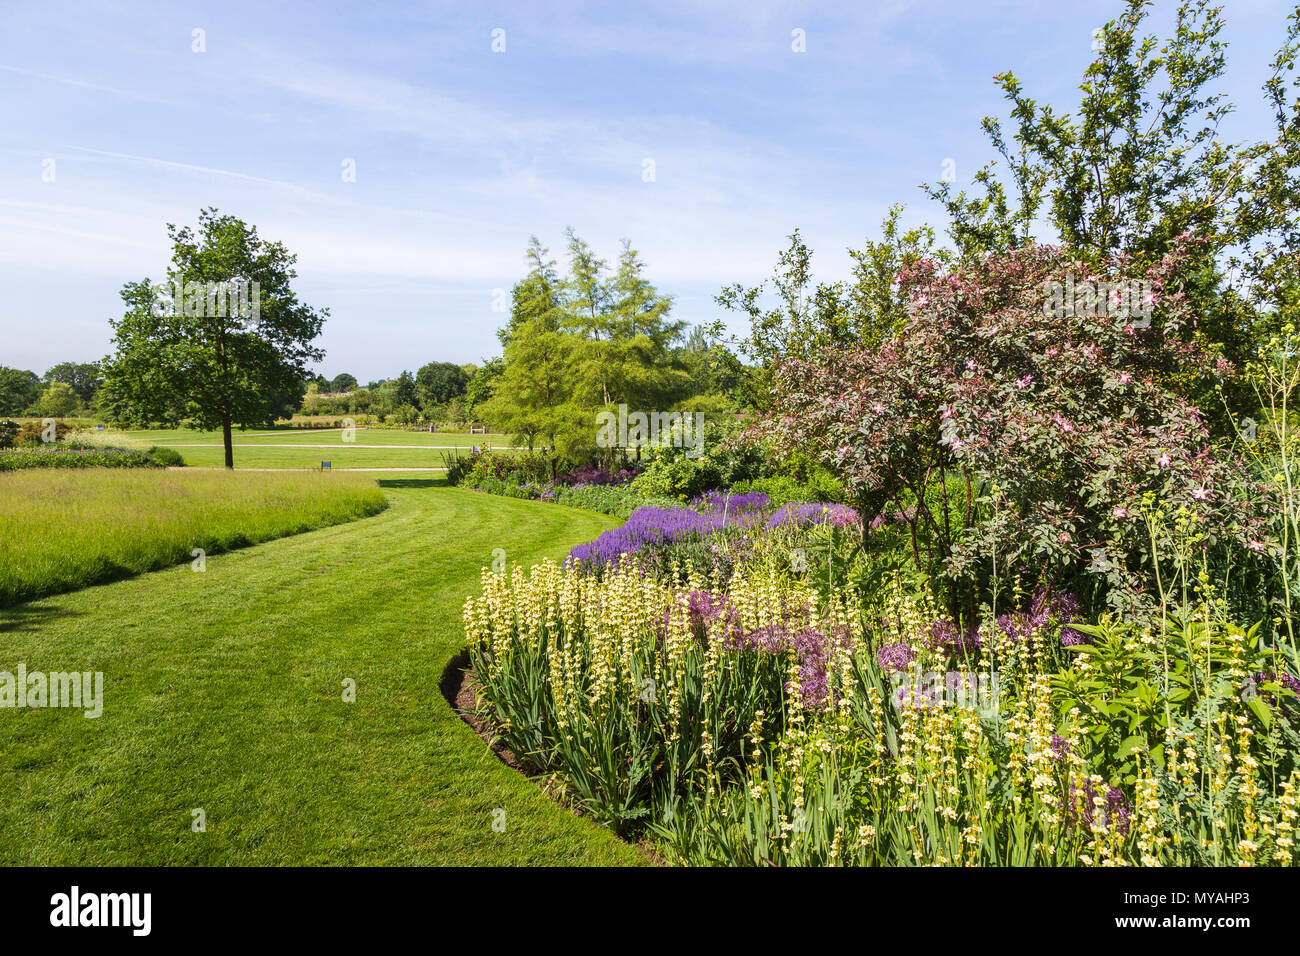 RHS Gardens Hyde Hall in Essex on a Glorious Summer Morning - Stock Image